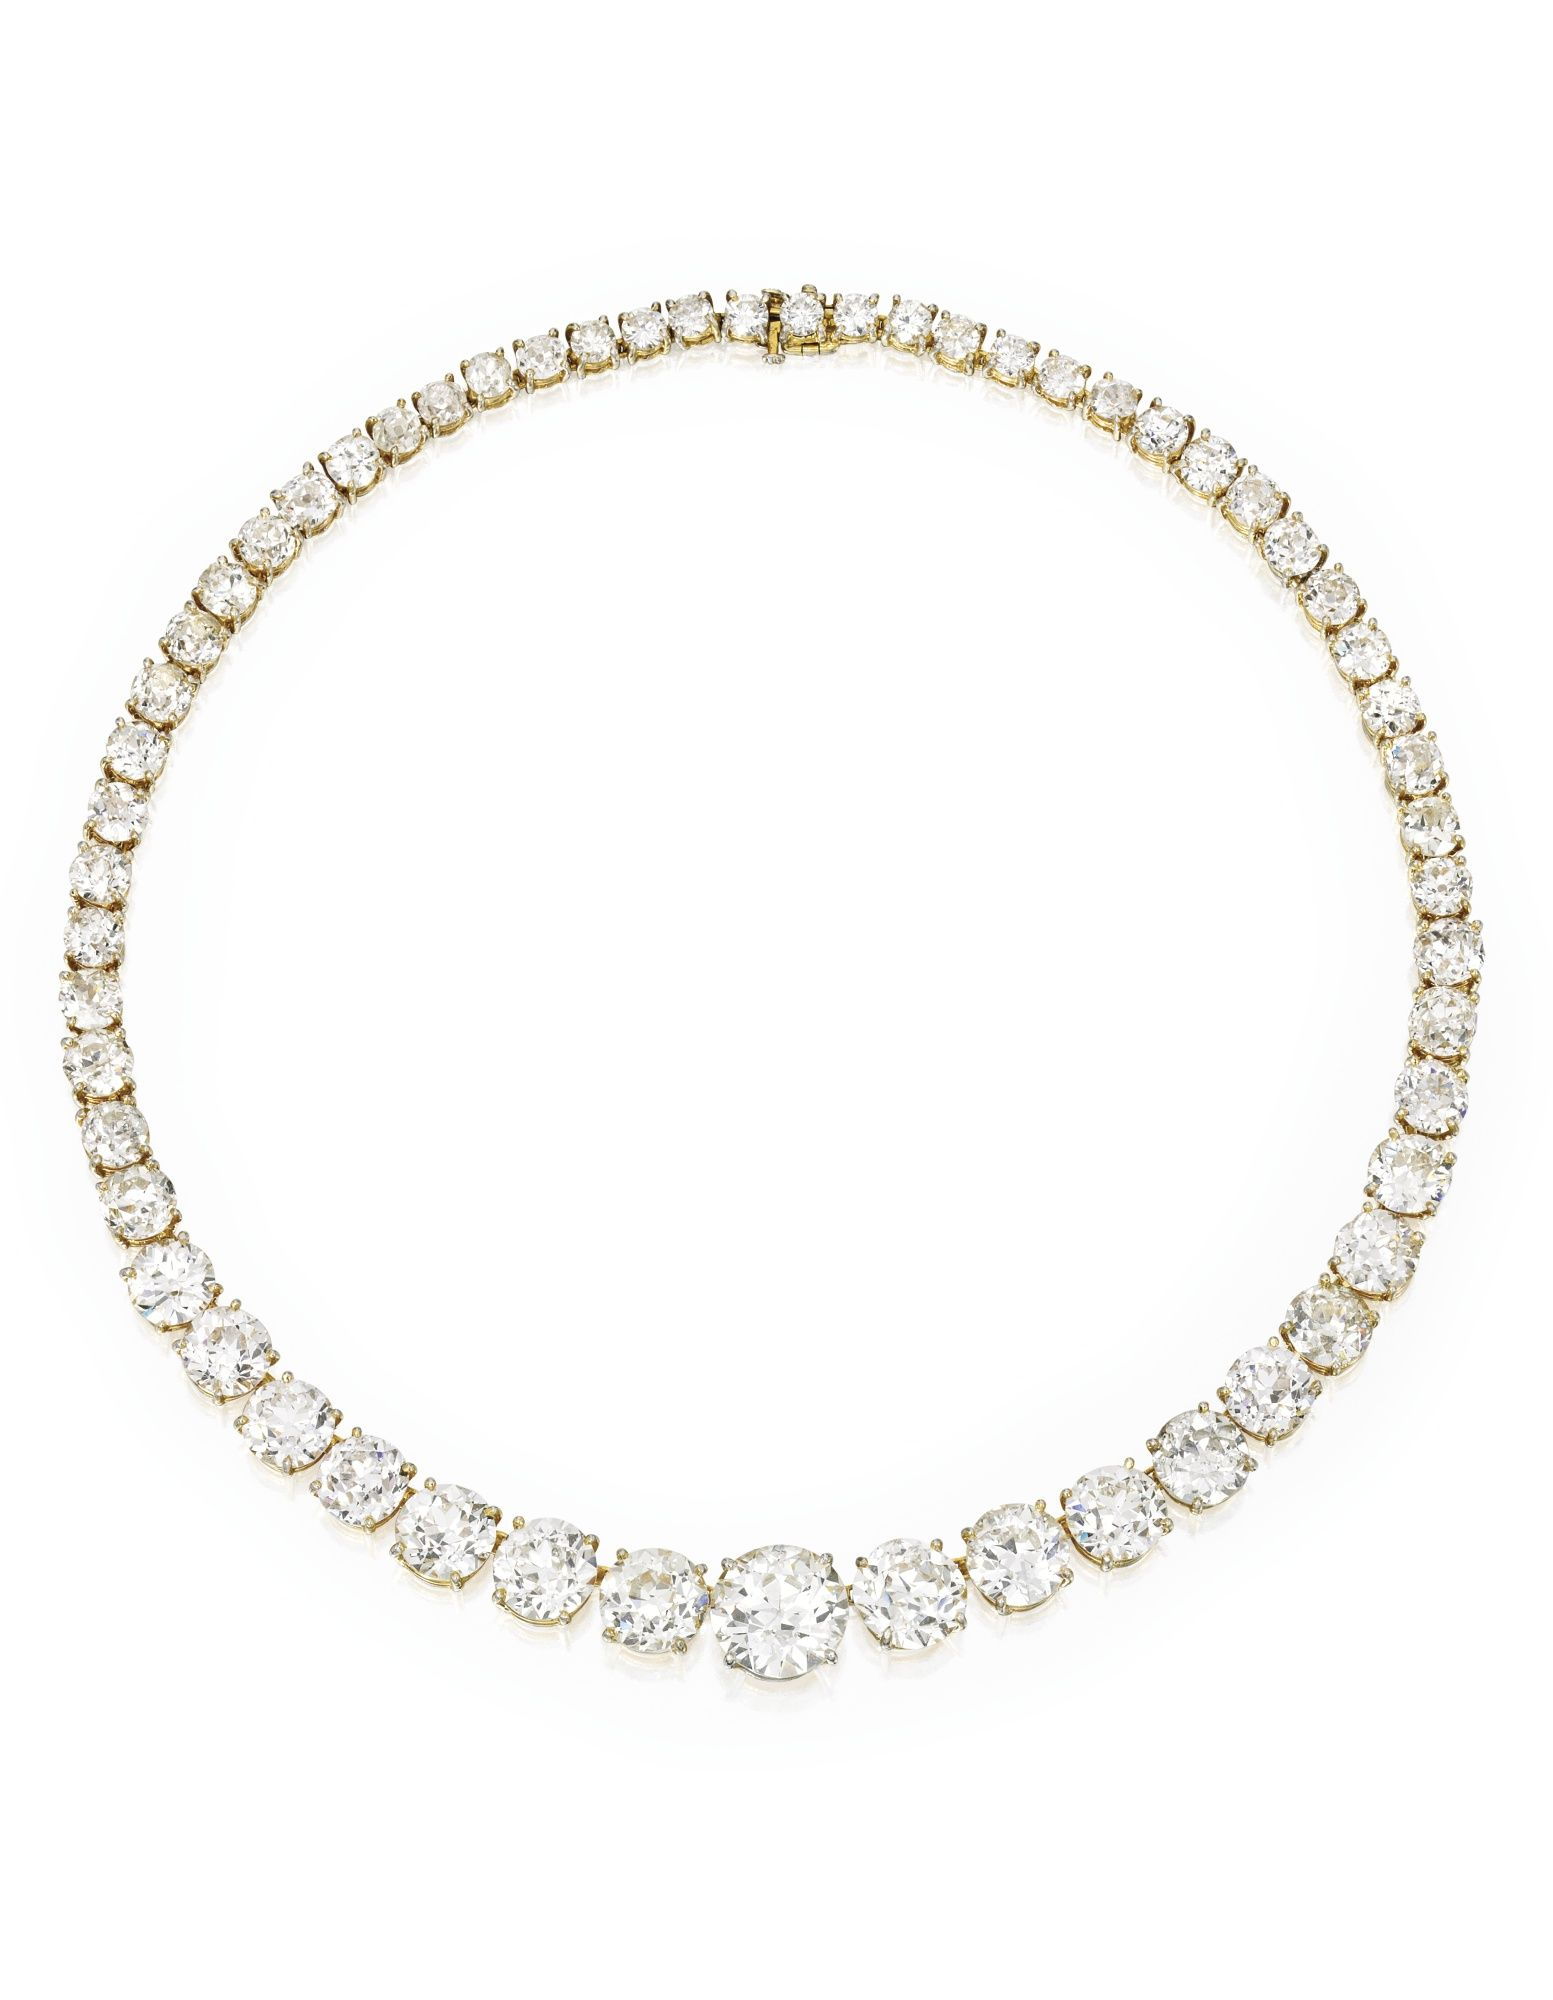 Gold and Diamond Rivière Necklace, Van Cleef & Arpels Centered by an old European-cut diamond weighing 6.04 carats, further set with 57 graduating old European-cut diamonds weighing approximately 50.75 carats, length 14 inches, signed V.C&A., numbered 1230SO; together with an antique style gold and silver necklace mounting.